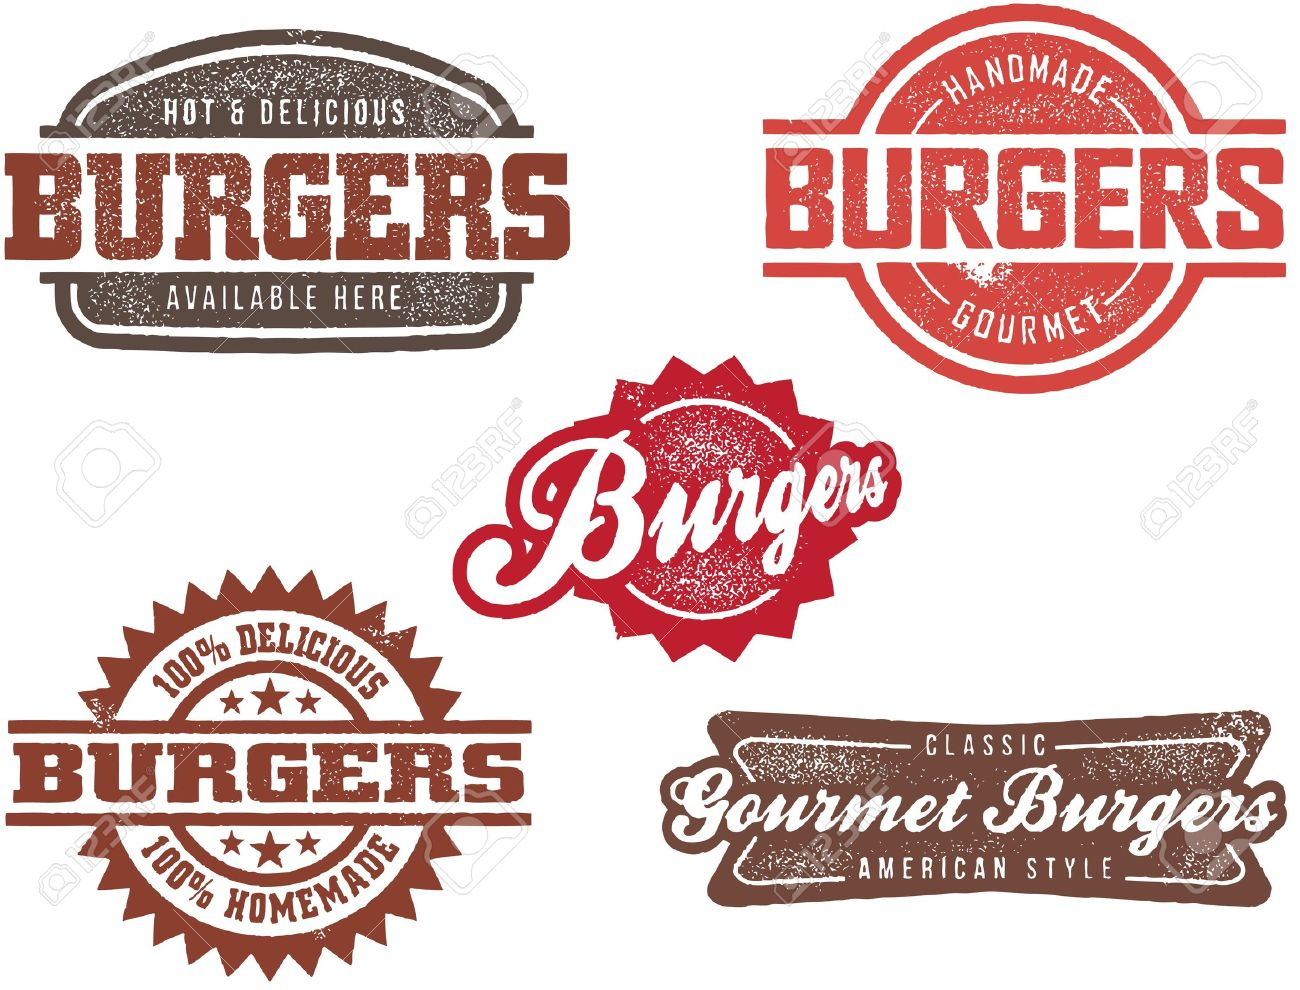 Vintage Style Burger Stamps Stock Vector - 10191043